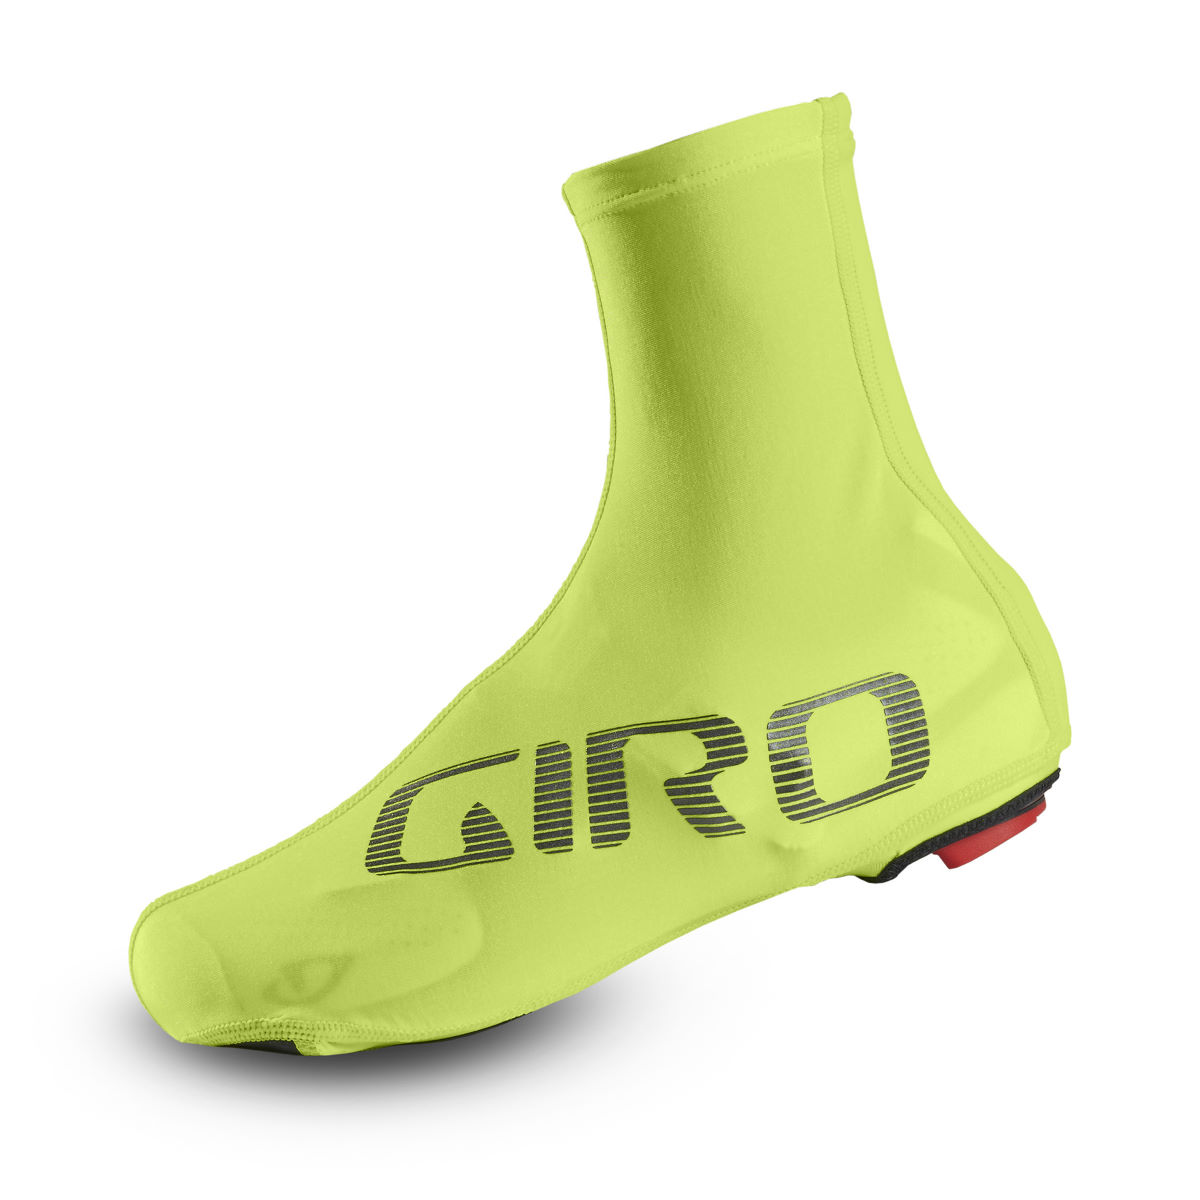 Couvre-chaussures Giro Ultralight Aero - L Jaune Couvre-chaussures